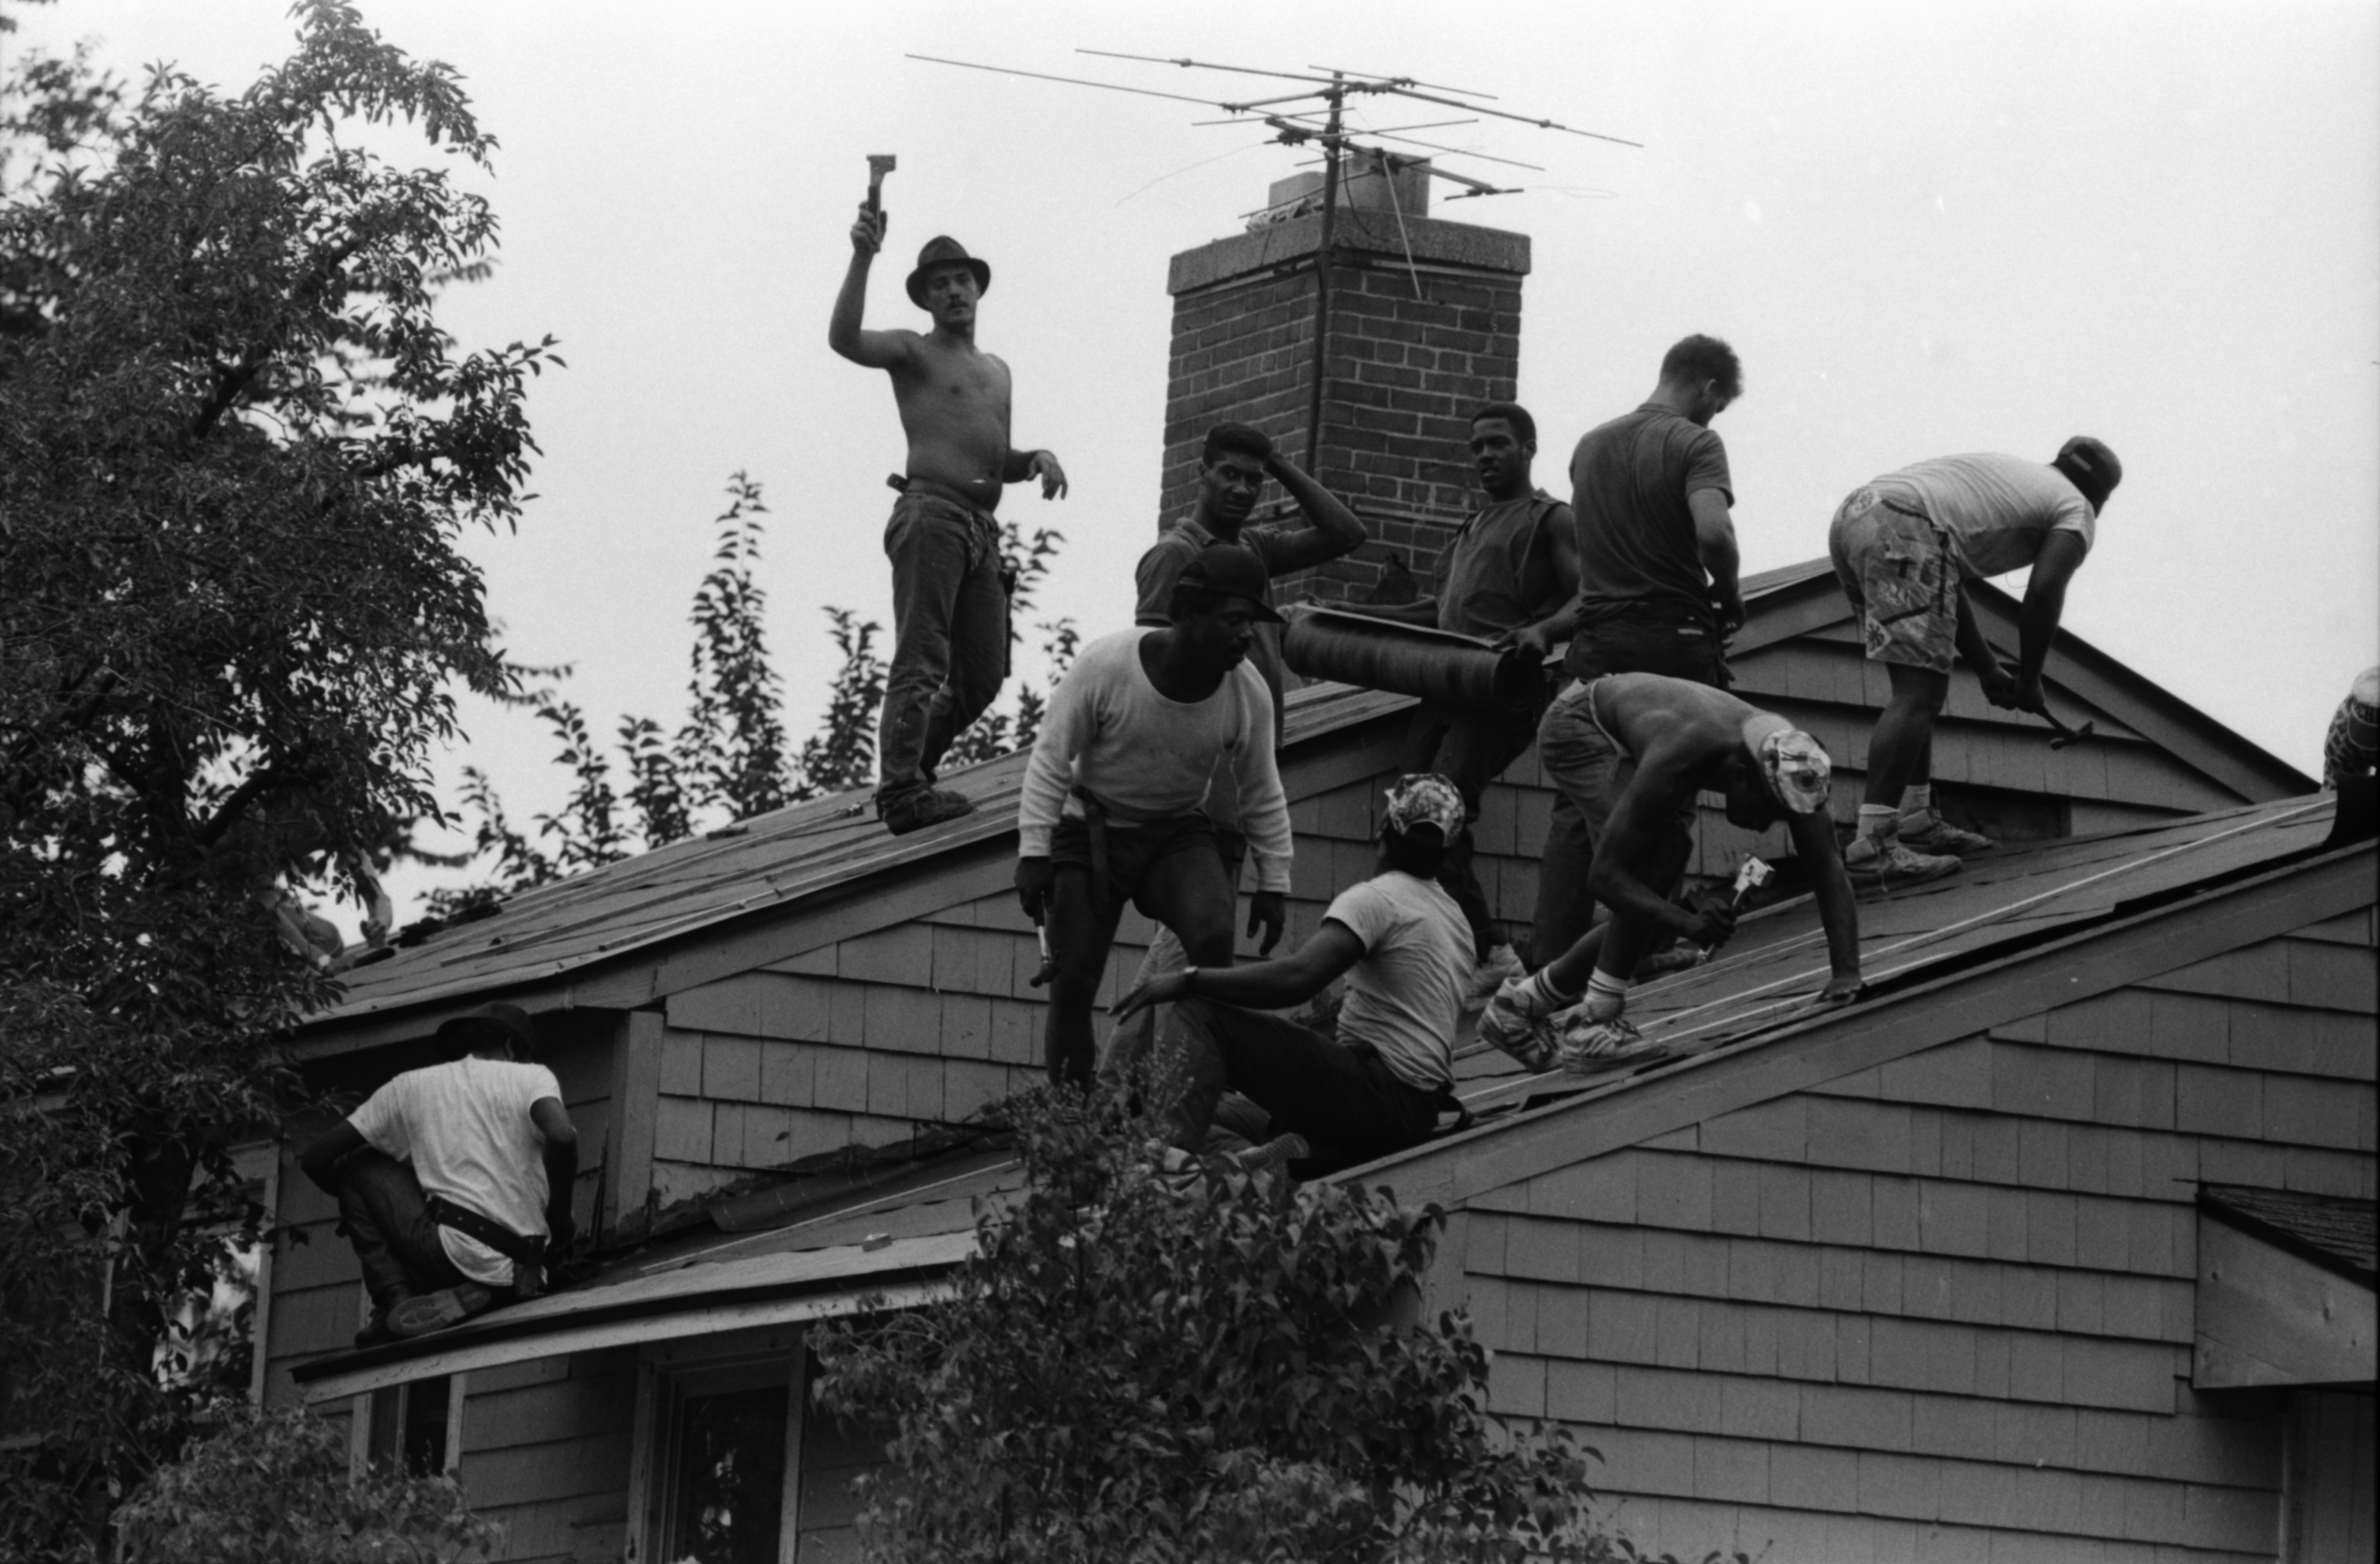 Roofers Work on Pittsfield Village, August 1987 image